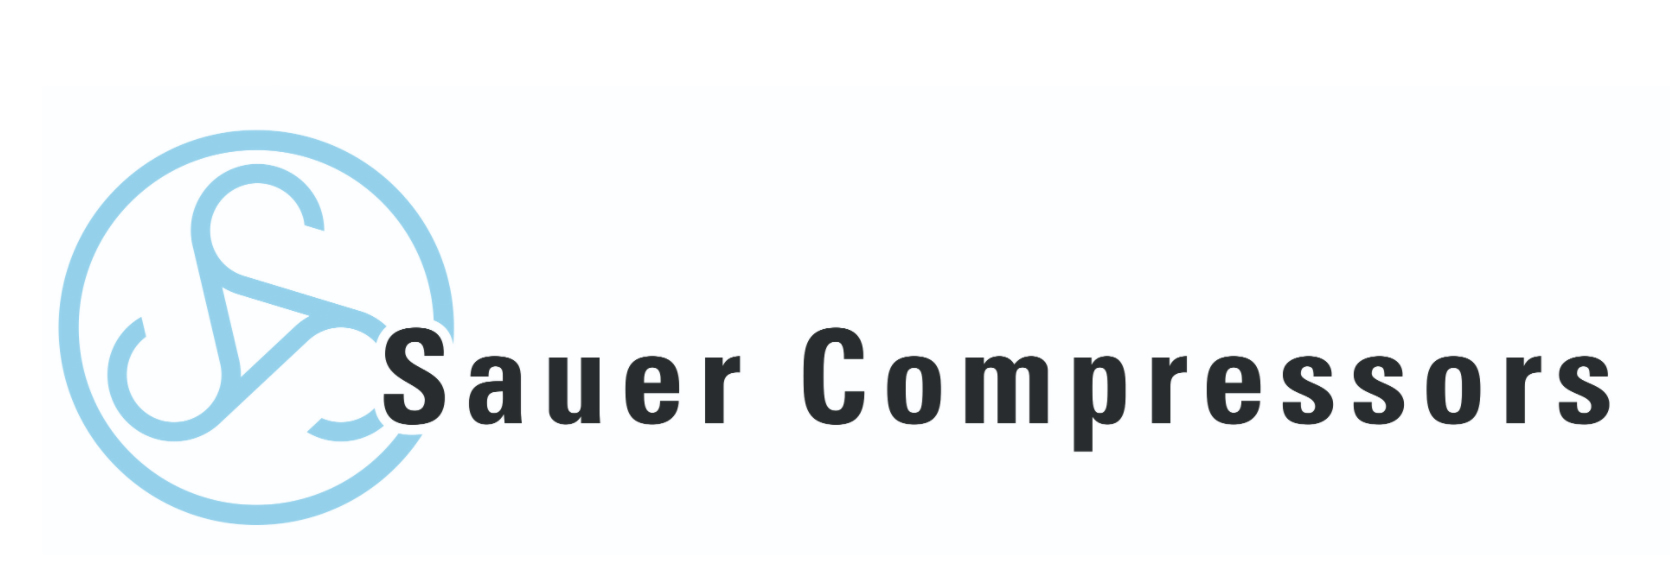 sauer_compressors_logo_large_4000x